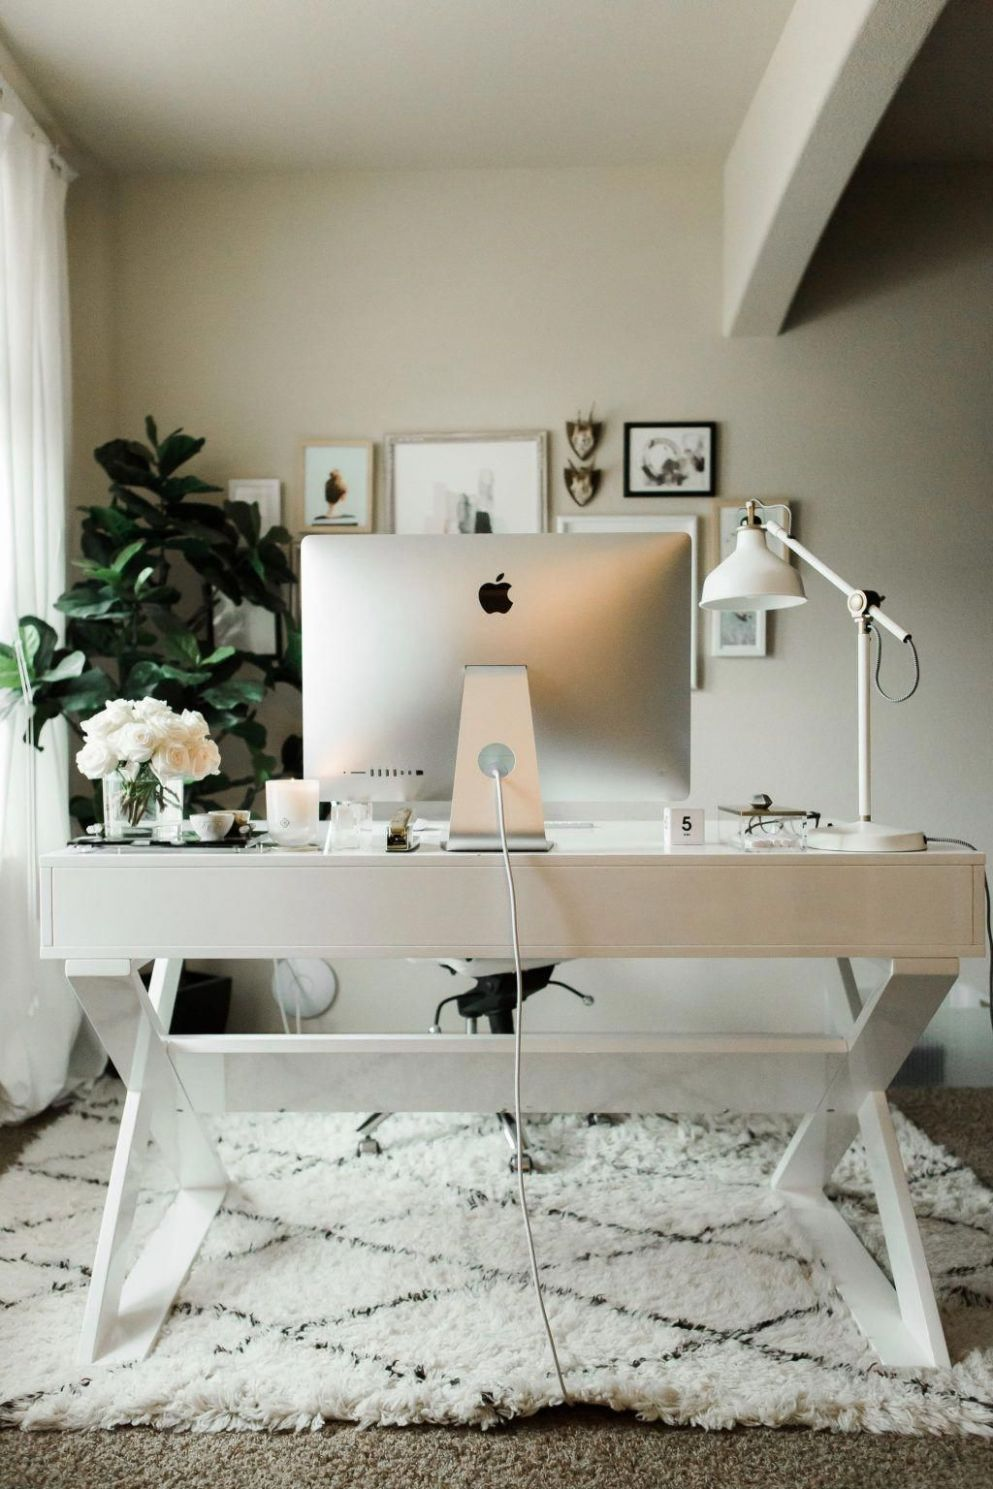 12+ Delightful Home Office Design Ideas For Women in 12 (With ...